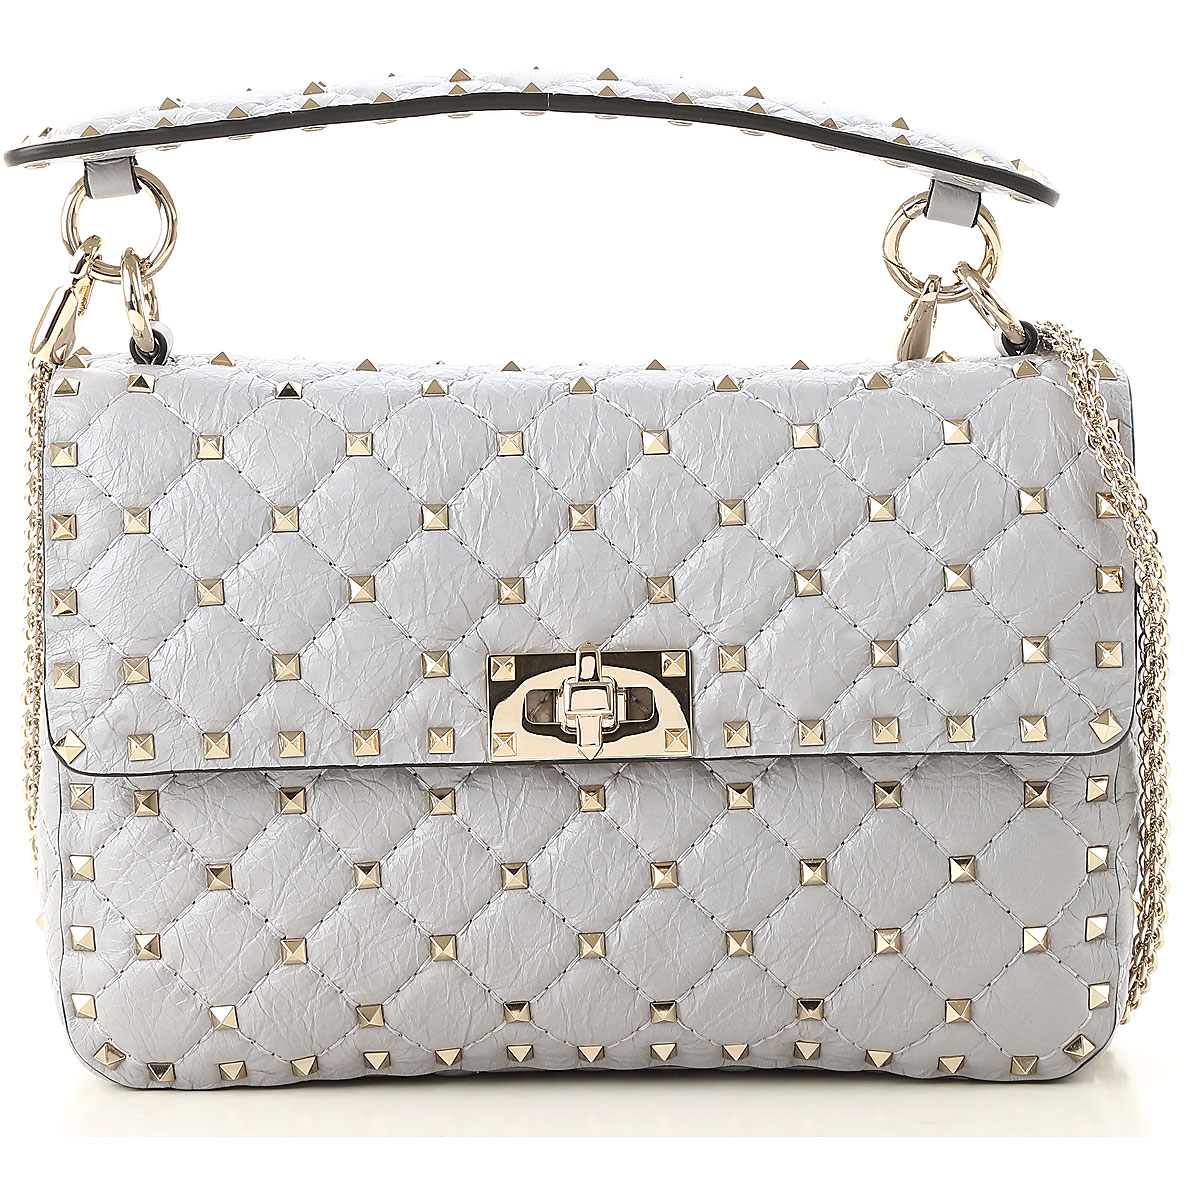 Valentino Shoulder Bag for Women, Pearl Grey, Leather, 2017 USA-470973